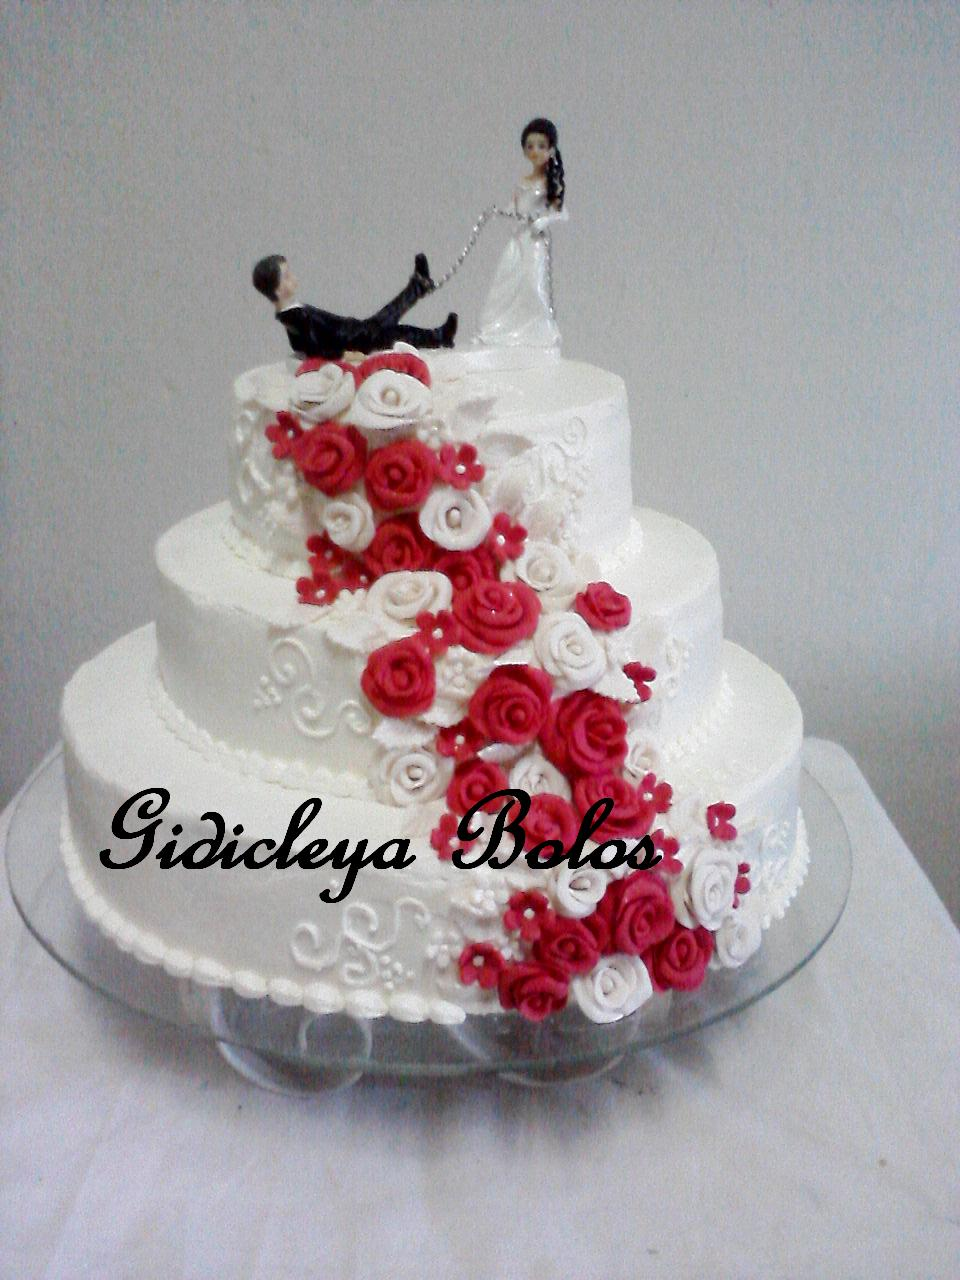 Bolos Decorados com Chantilly